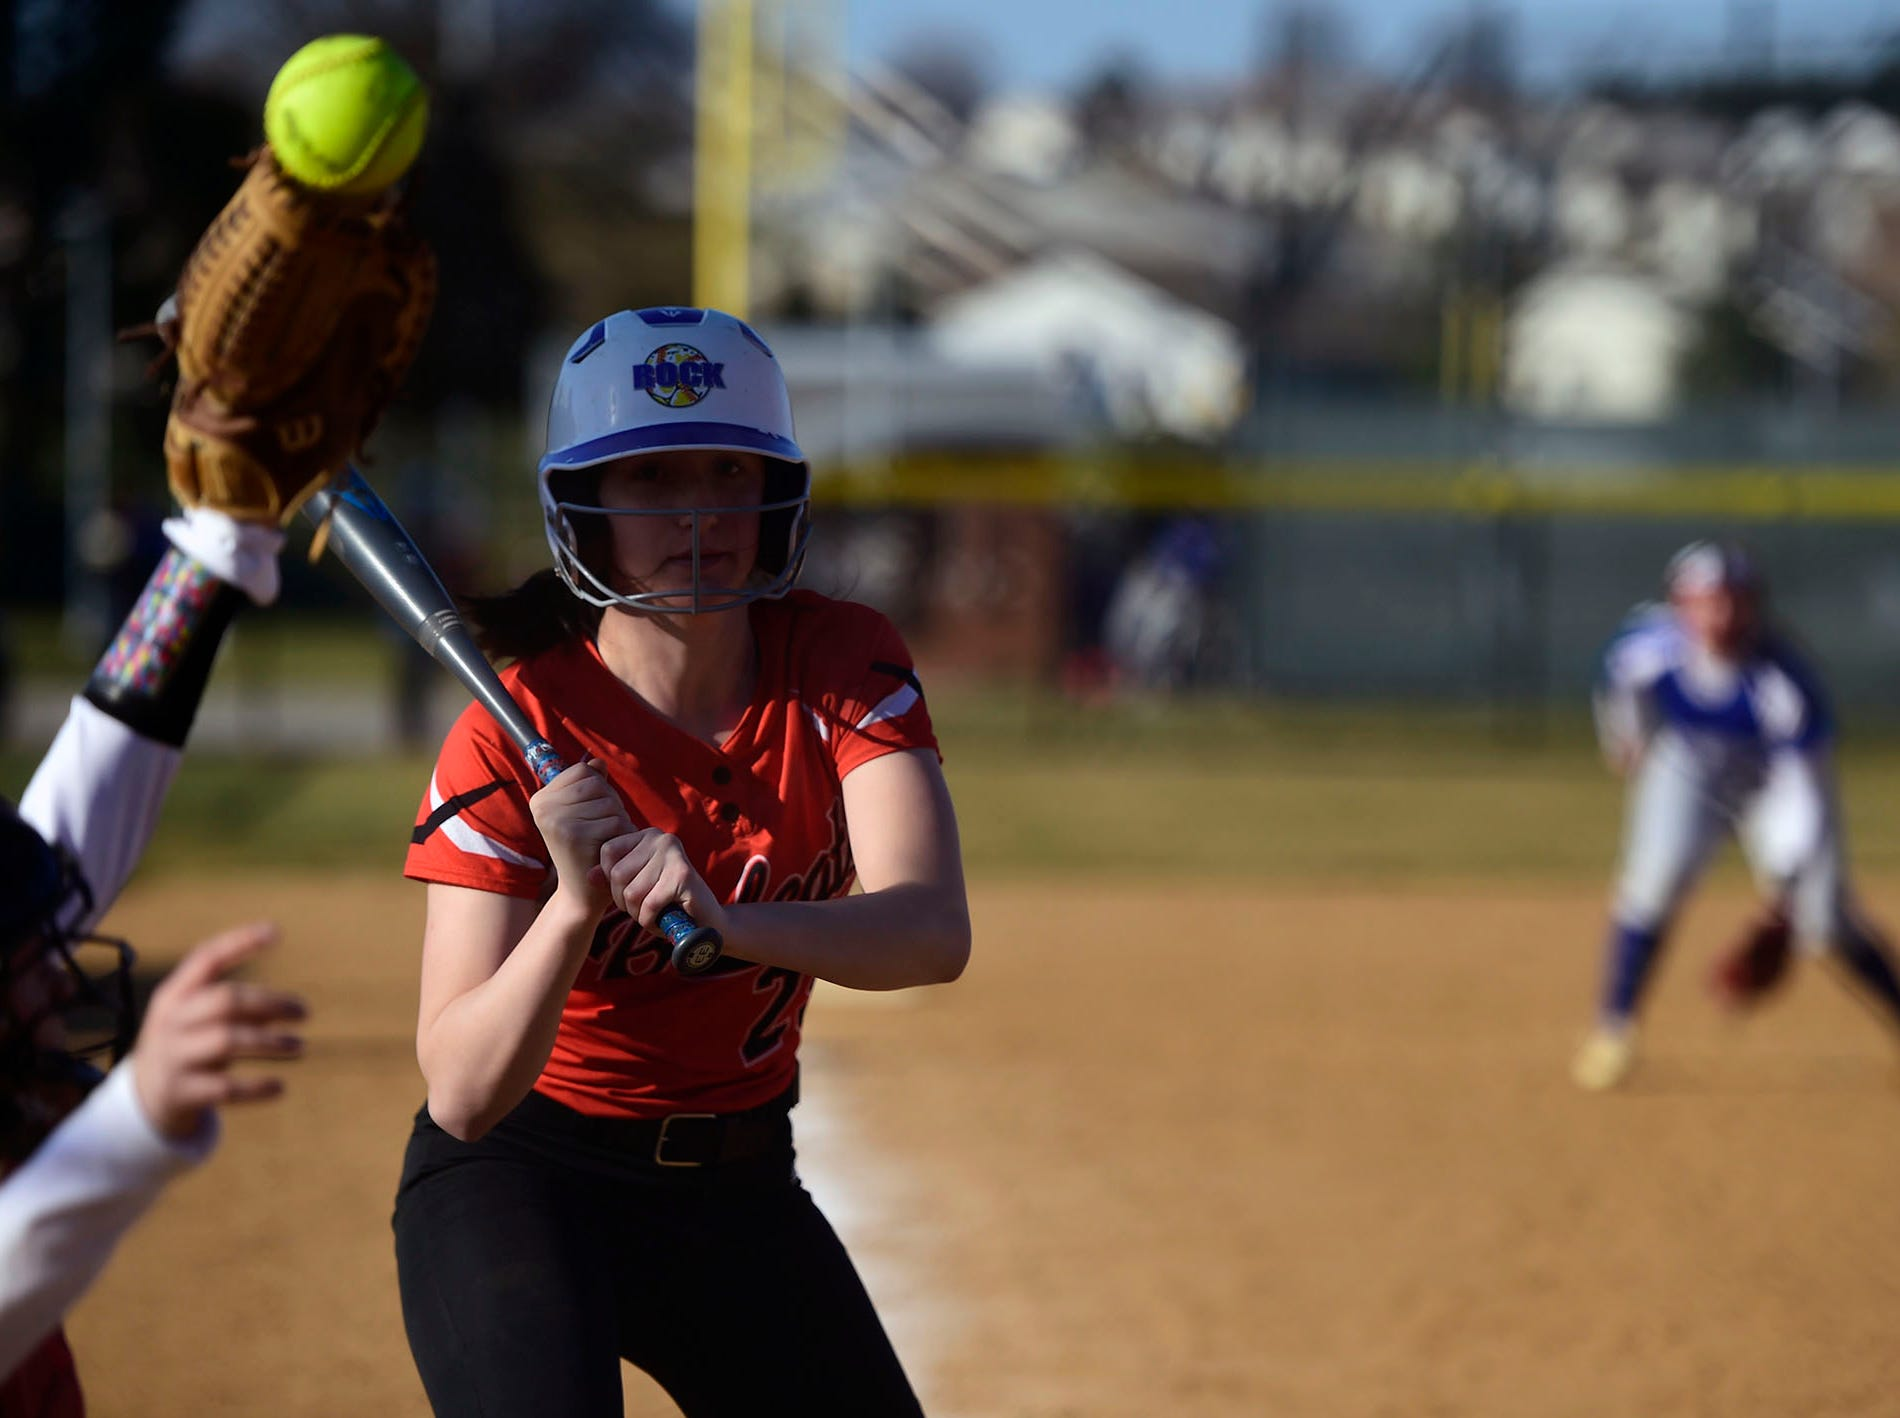 Northeastern's Belle Bortner watches a pitch sail out of the strike zone. Bortner went 1-for-4 with a double in Spring Grove's 19-14 win against Northeastern Wednesday, April 3, 2019.